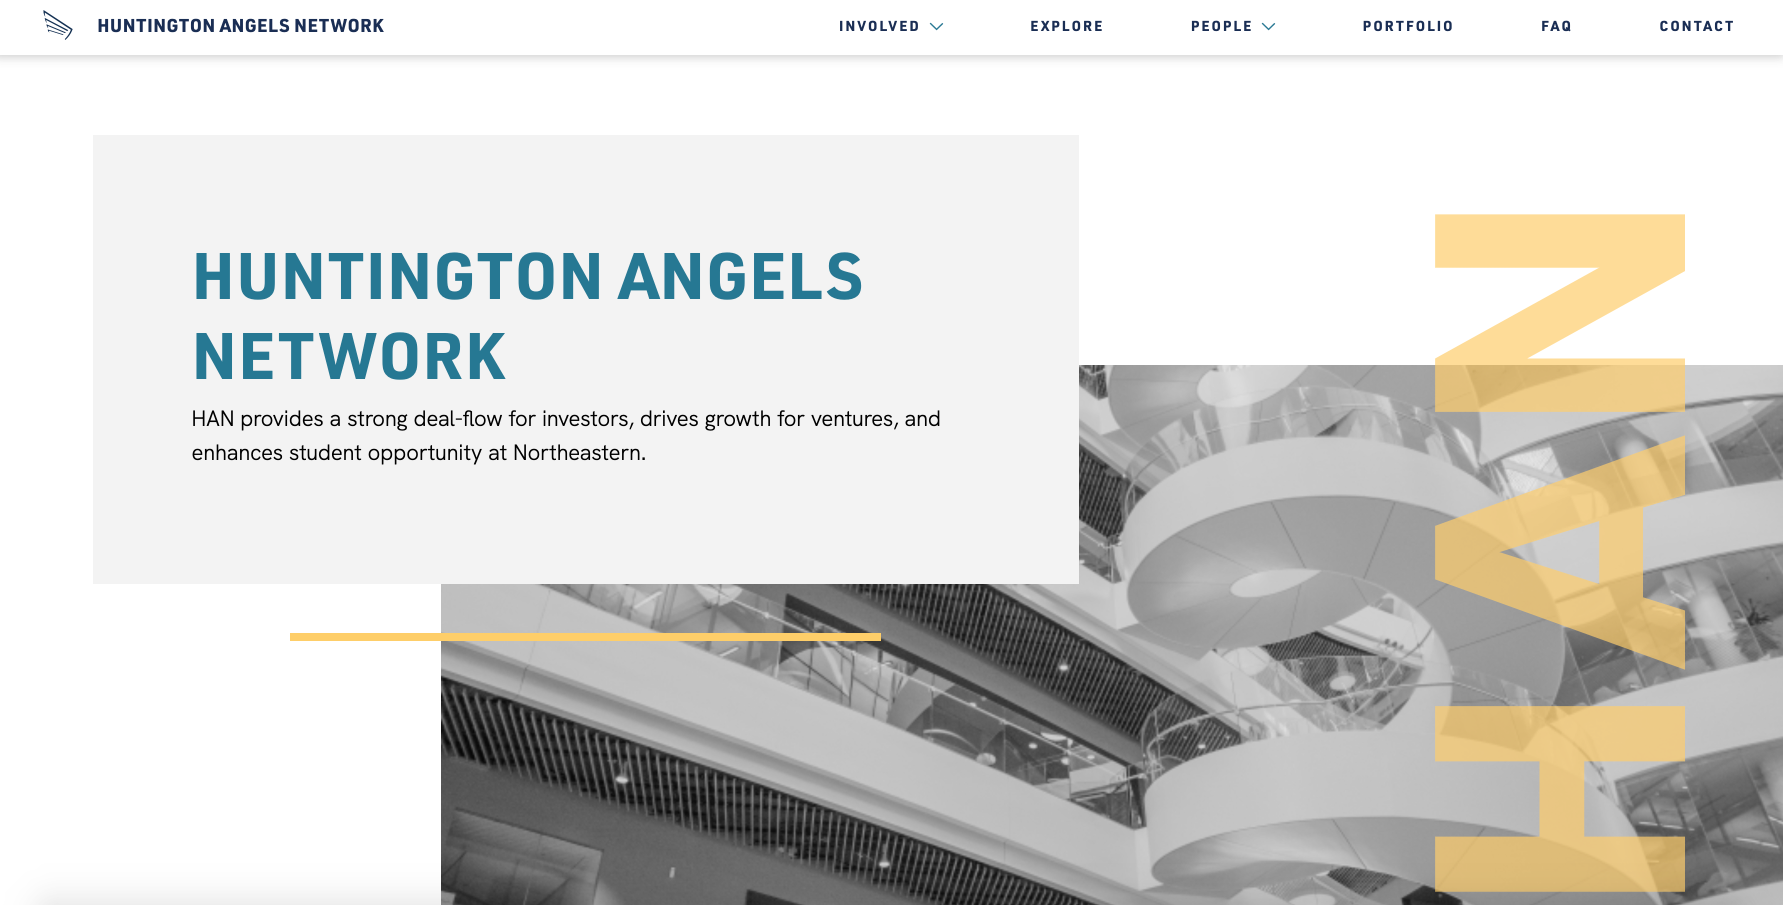 a screenshot of the Huntington Angels Network website, with the organization name in blue letters over a gray block, overlaid on a black and white photo of a spiral staircase. The acronym HAN is overlaid in translucent yellow text over the photo.